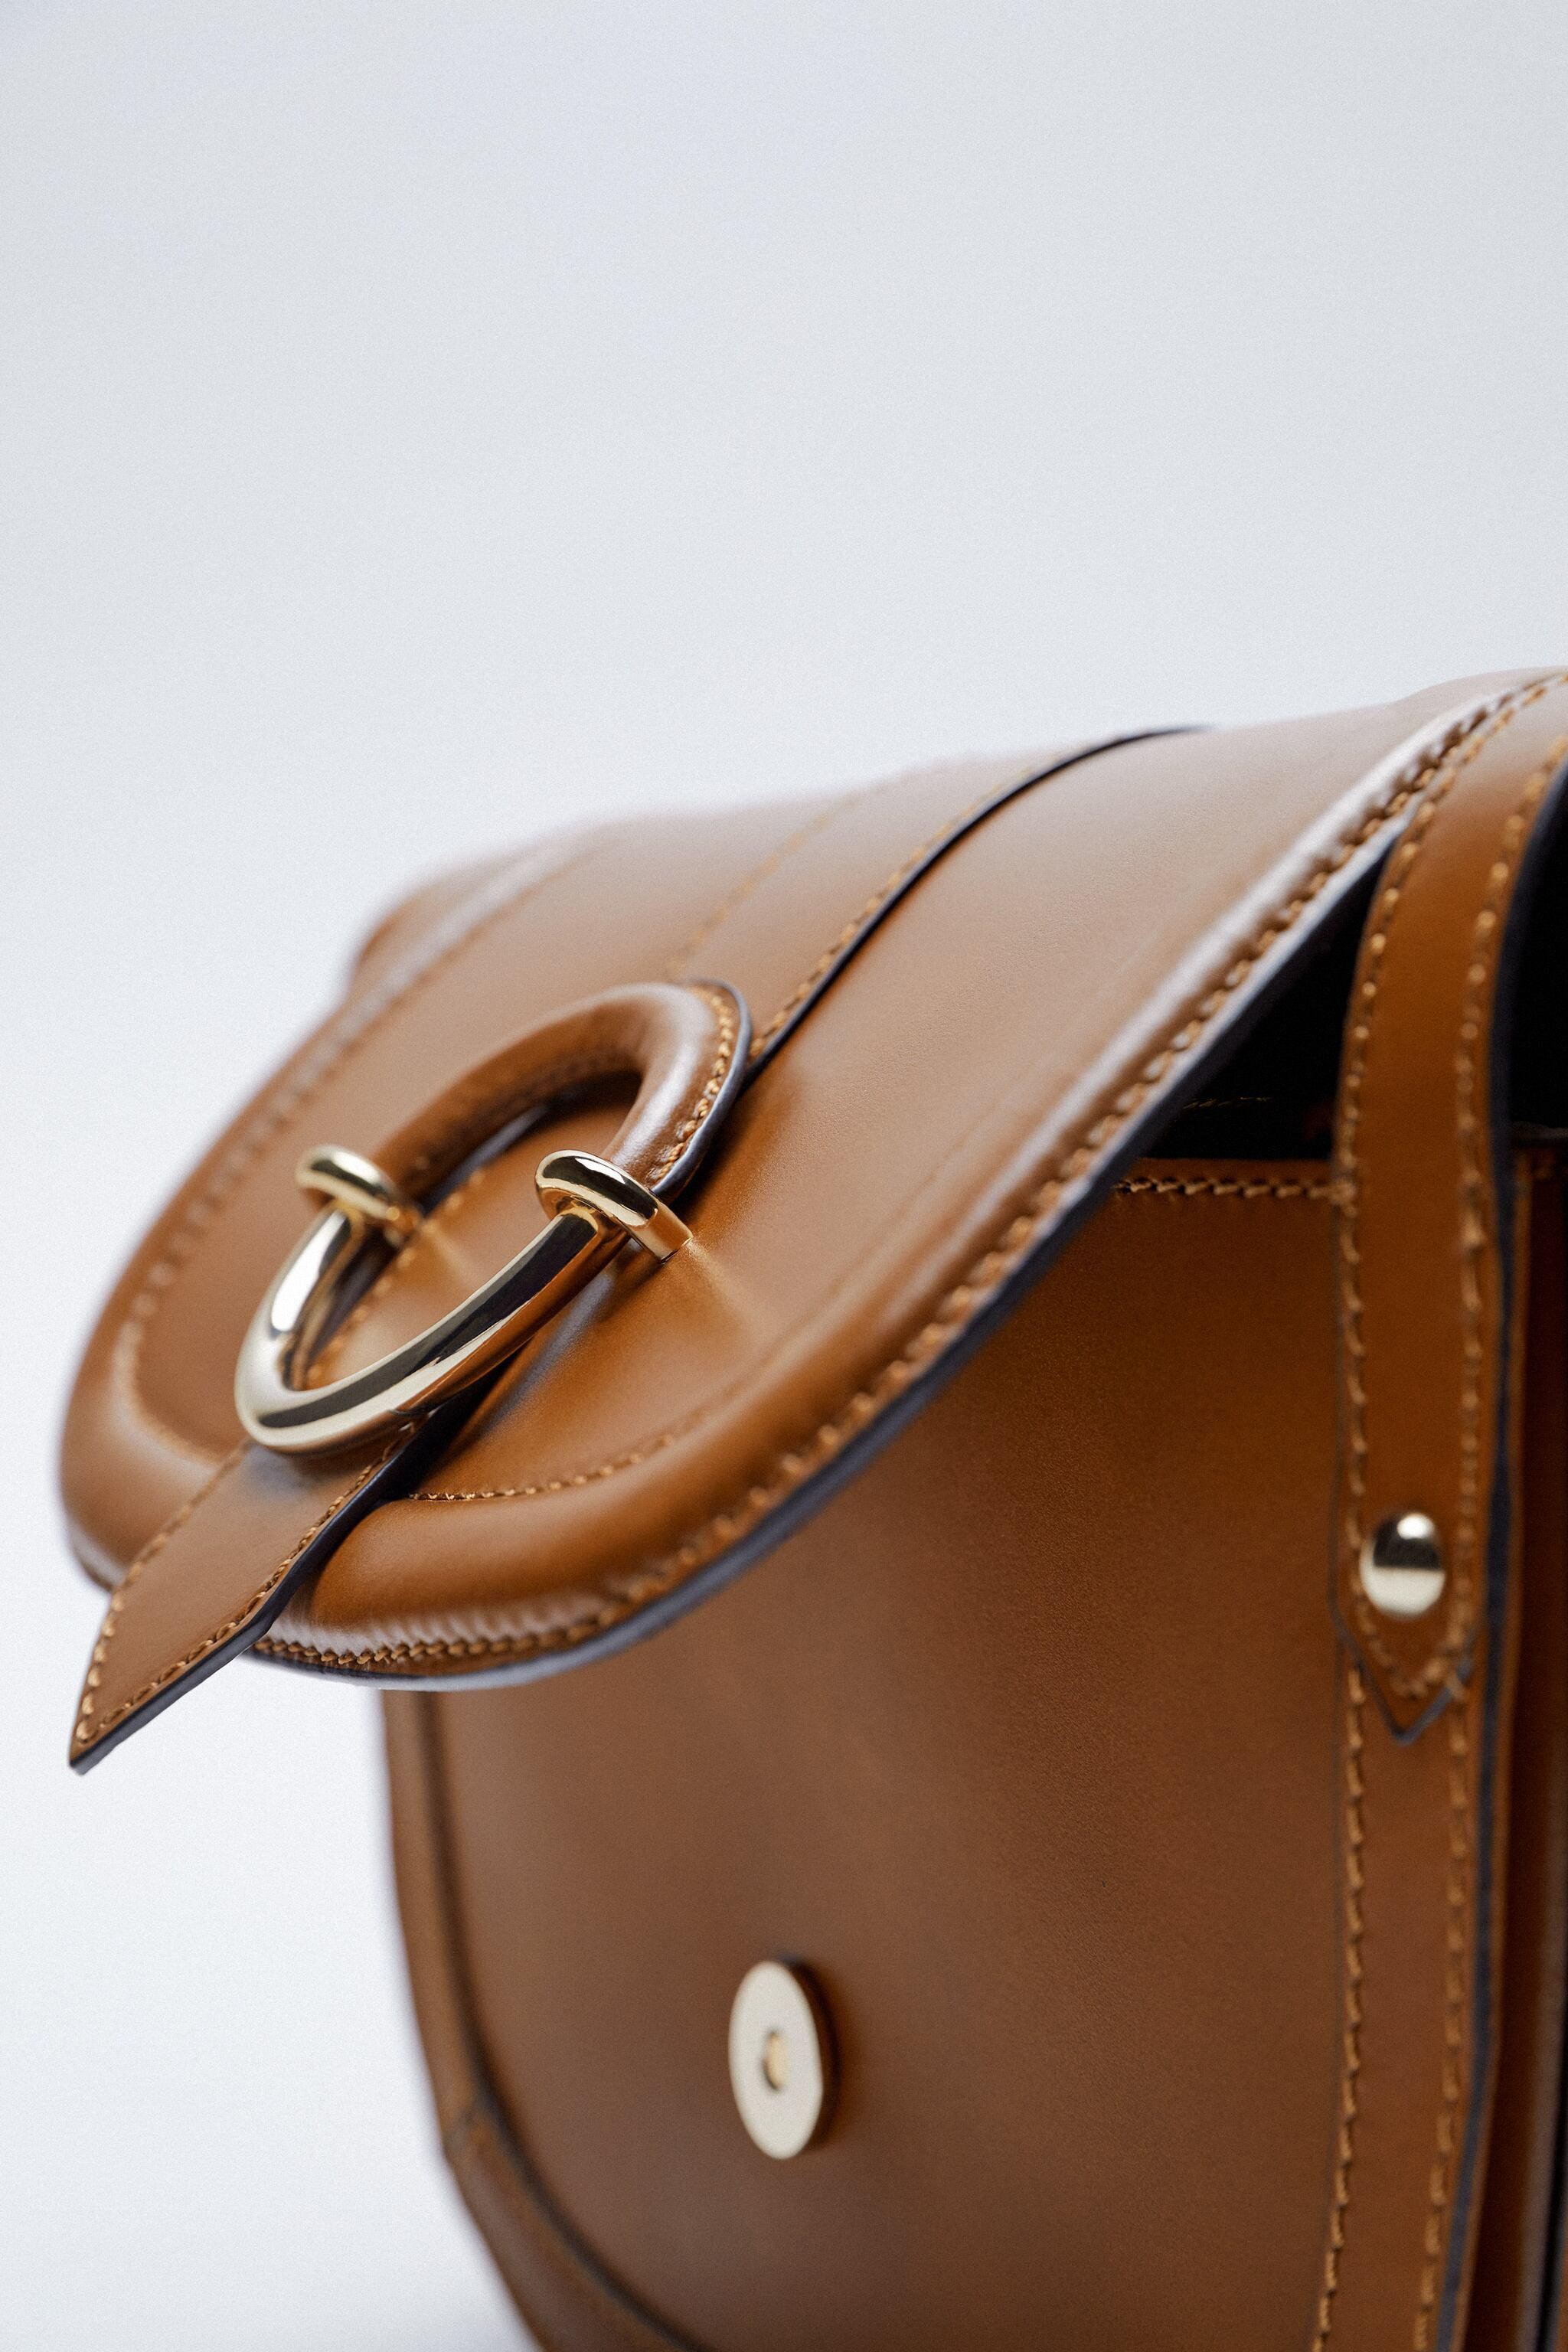 OVAL LEATHER CROSSBODY BAG WITH BUCKLE 3